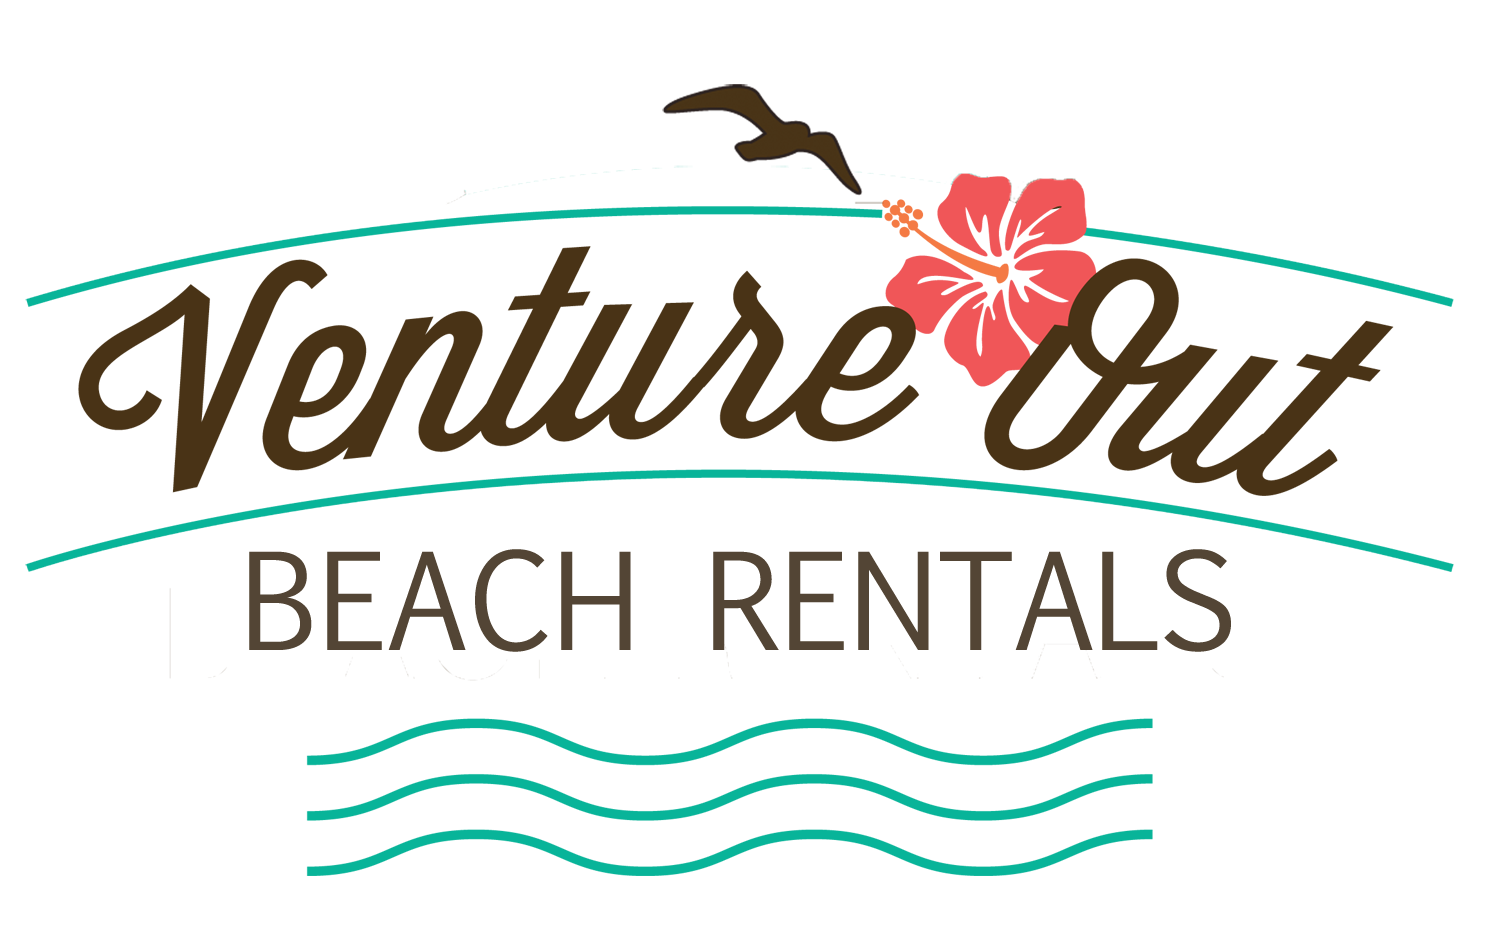 Venture Out Beach Rentals Logo